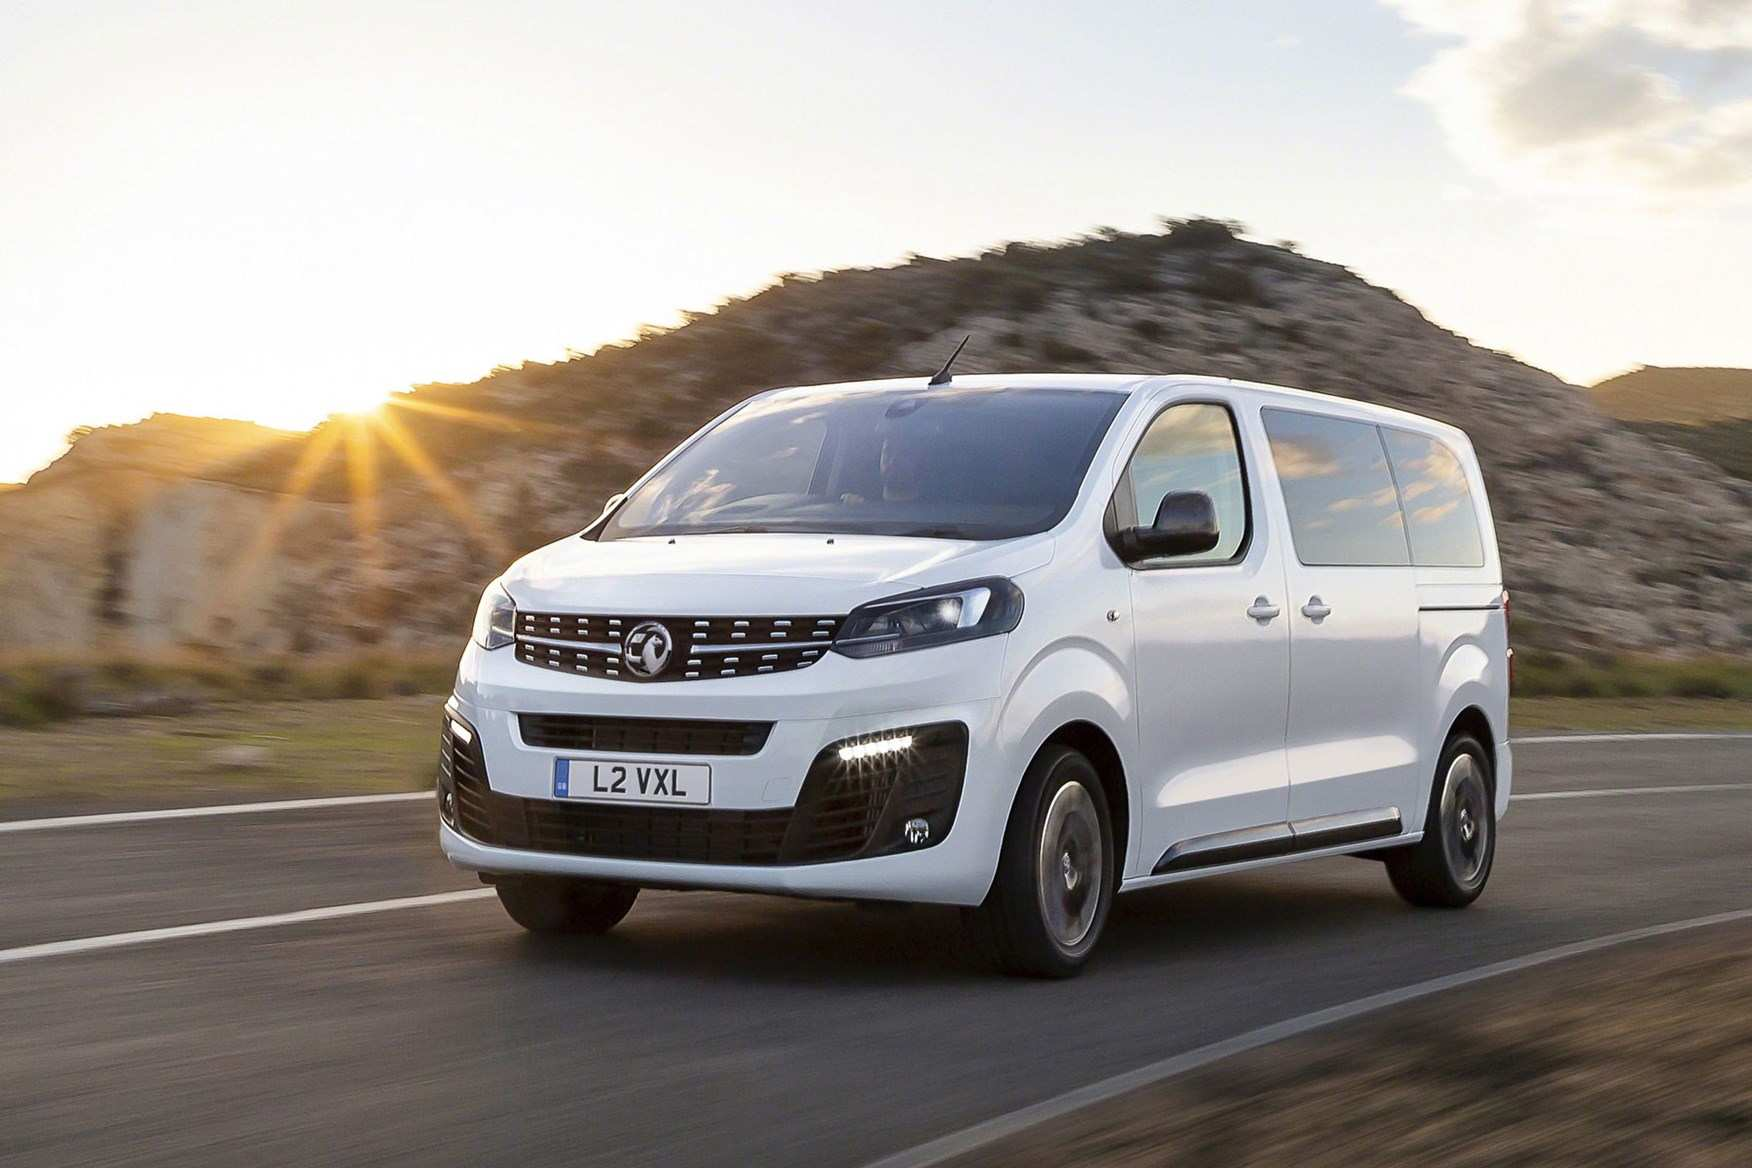 81 All New 2019 Opel Vivaro Ratings with 2019 Opel Vivaro